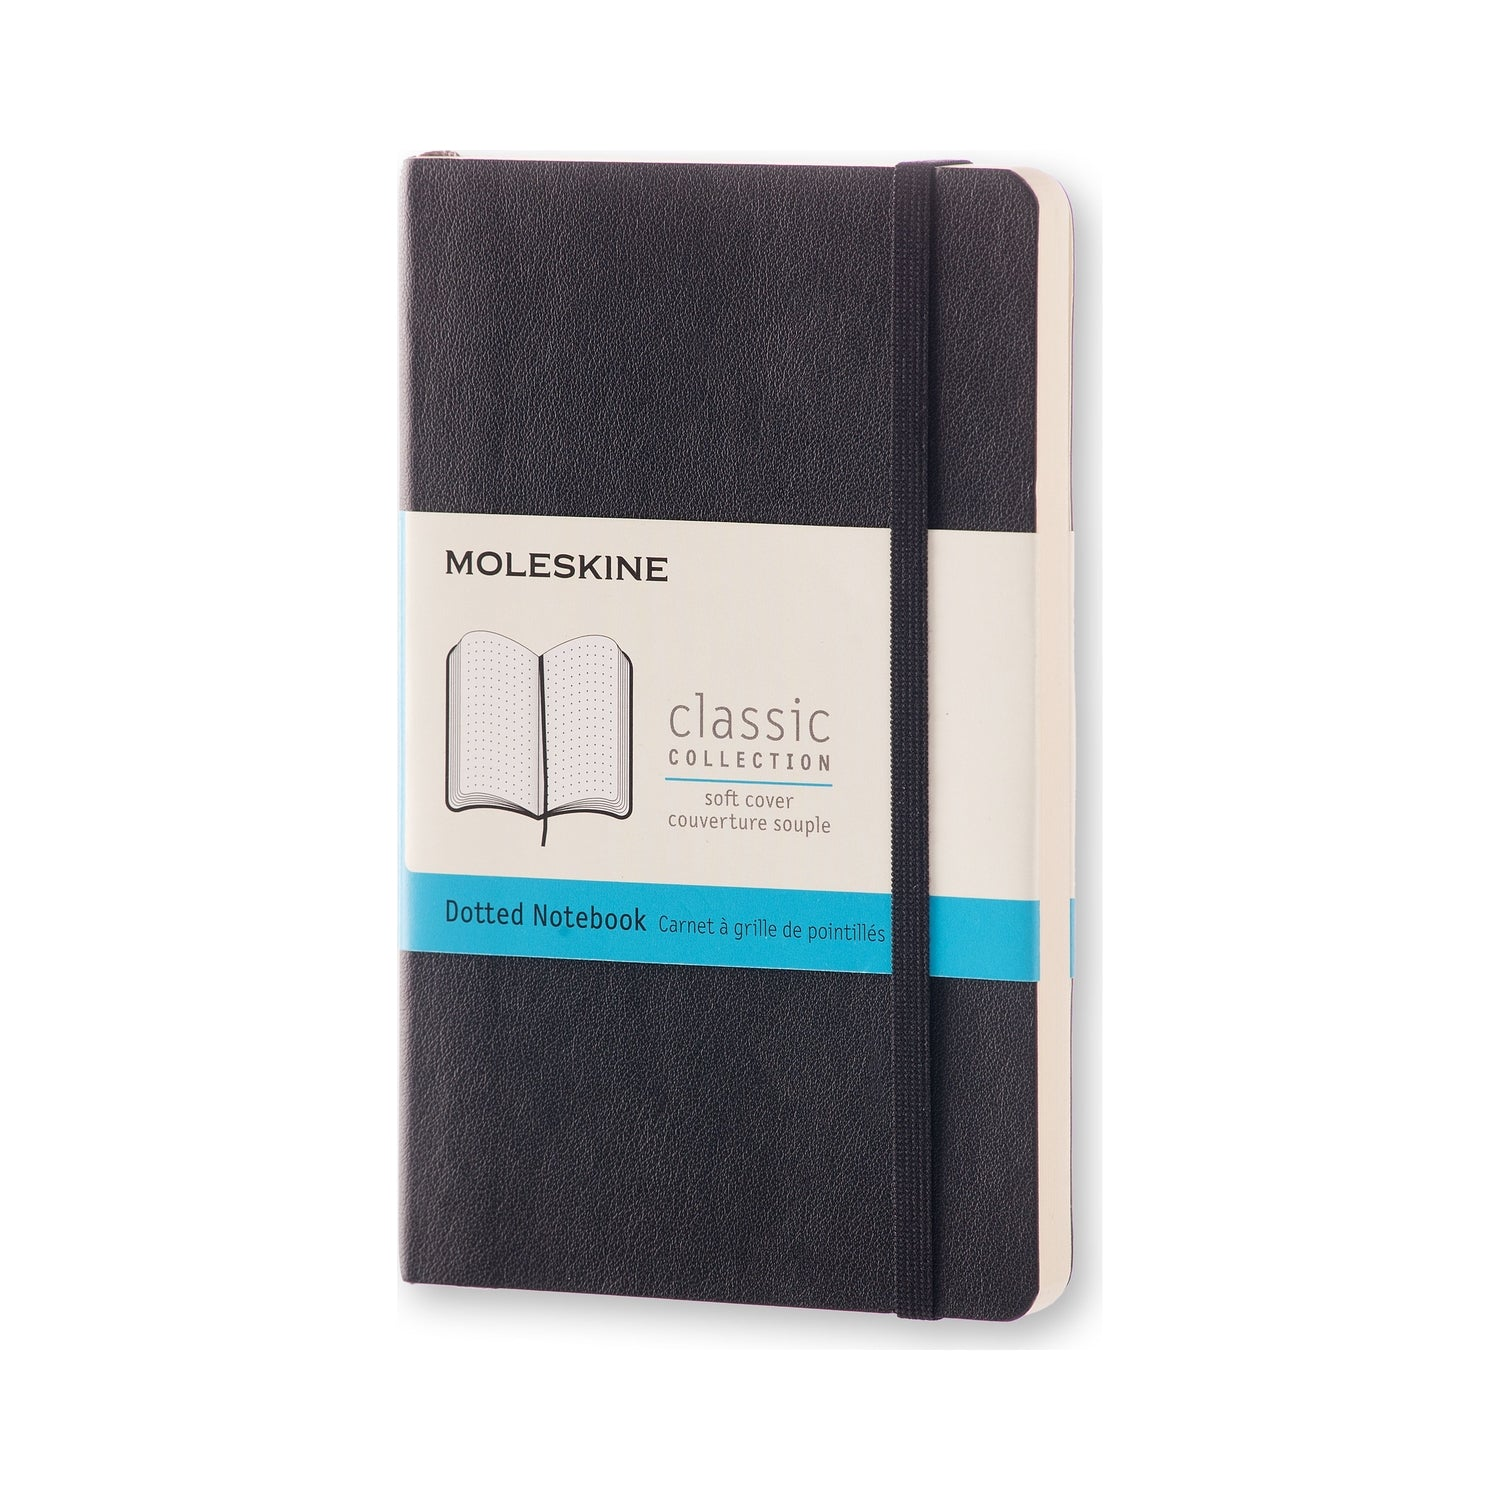 Moleskine Notebook Classic - Pocket Black Soft Cover - Dotted